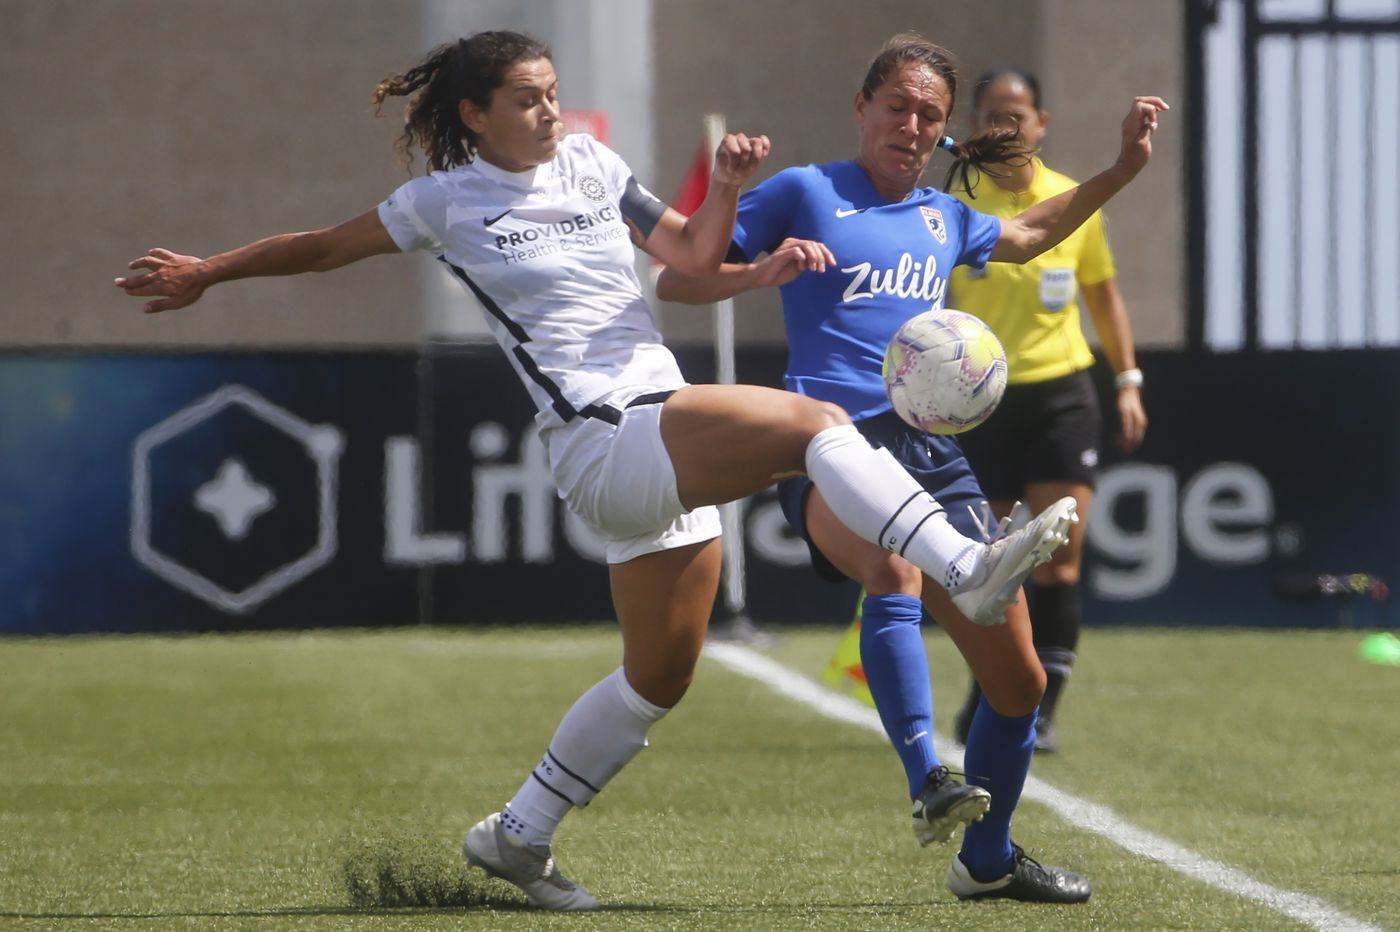 NWSL Challenge Cup: North Carolina beats Sky Blue, Portland ties OL Reign to end first round